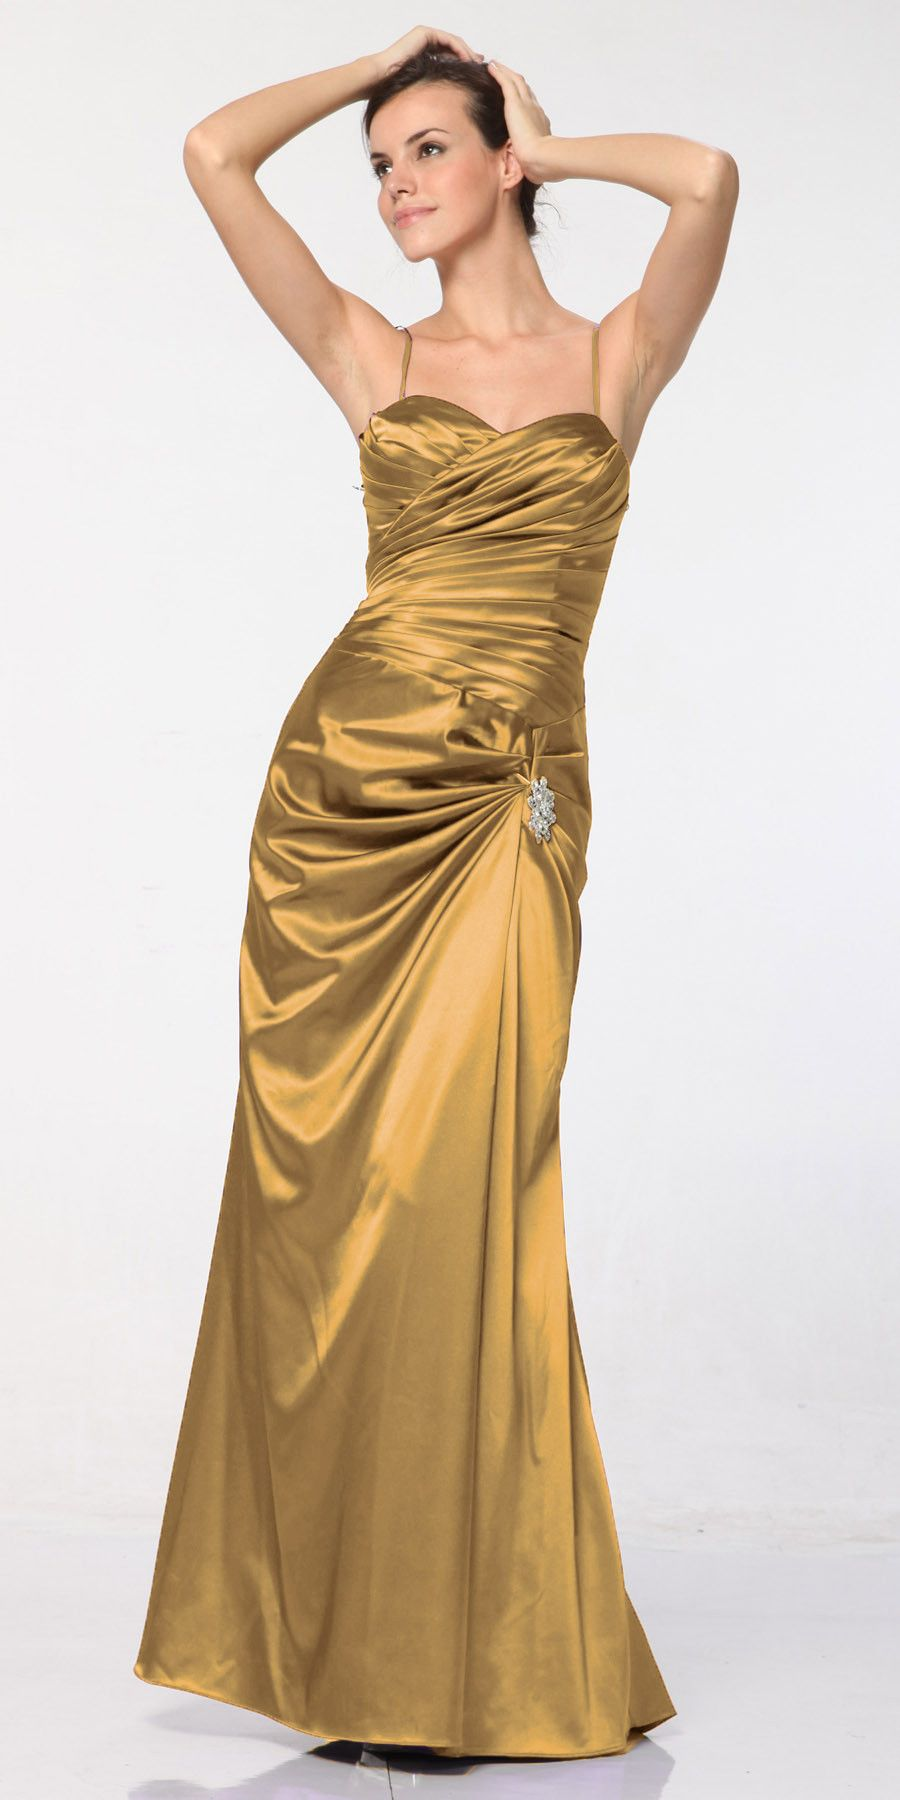 CLEARANCE - Plus Size Gold Satin Dress Pleated Bodice Strapless ...